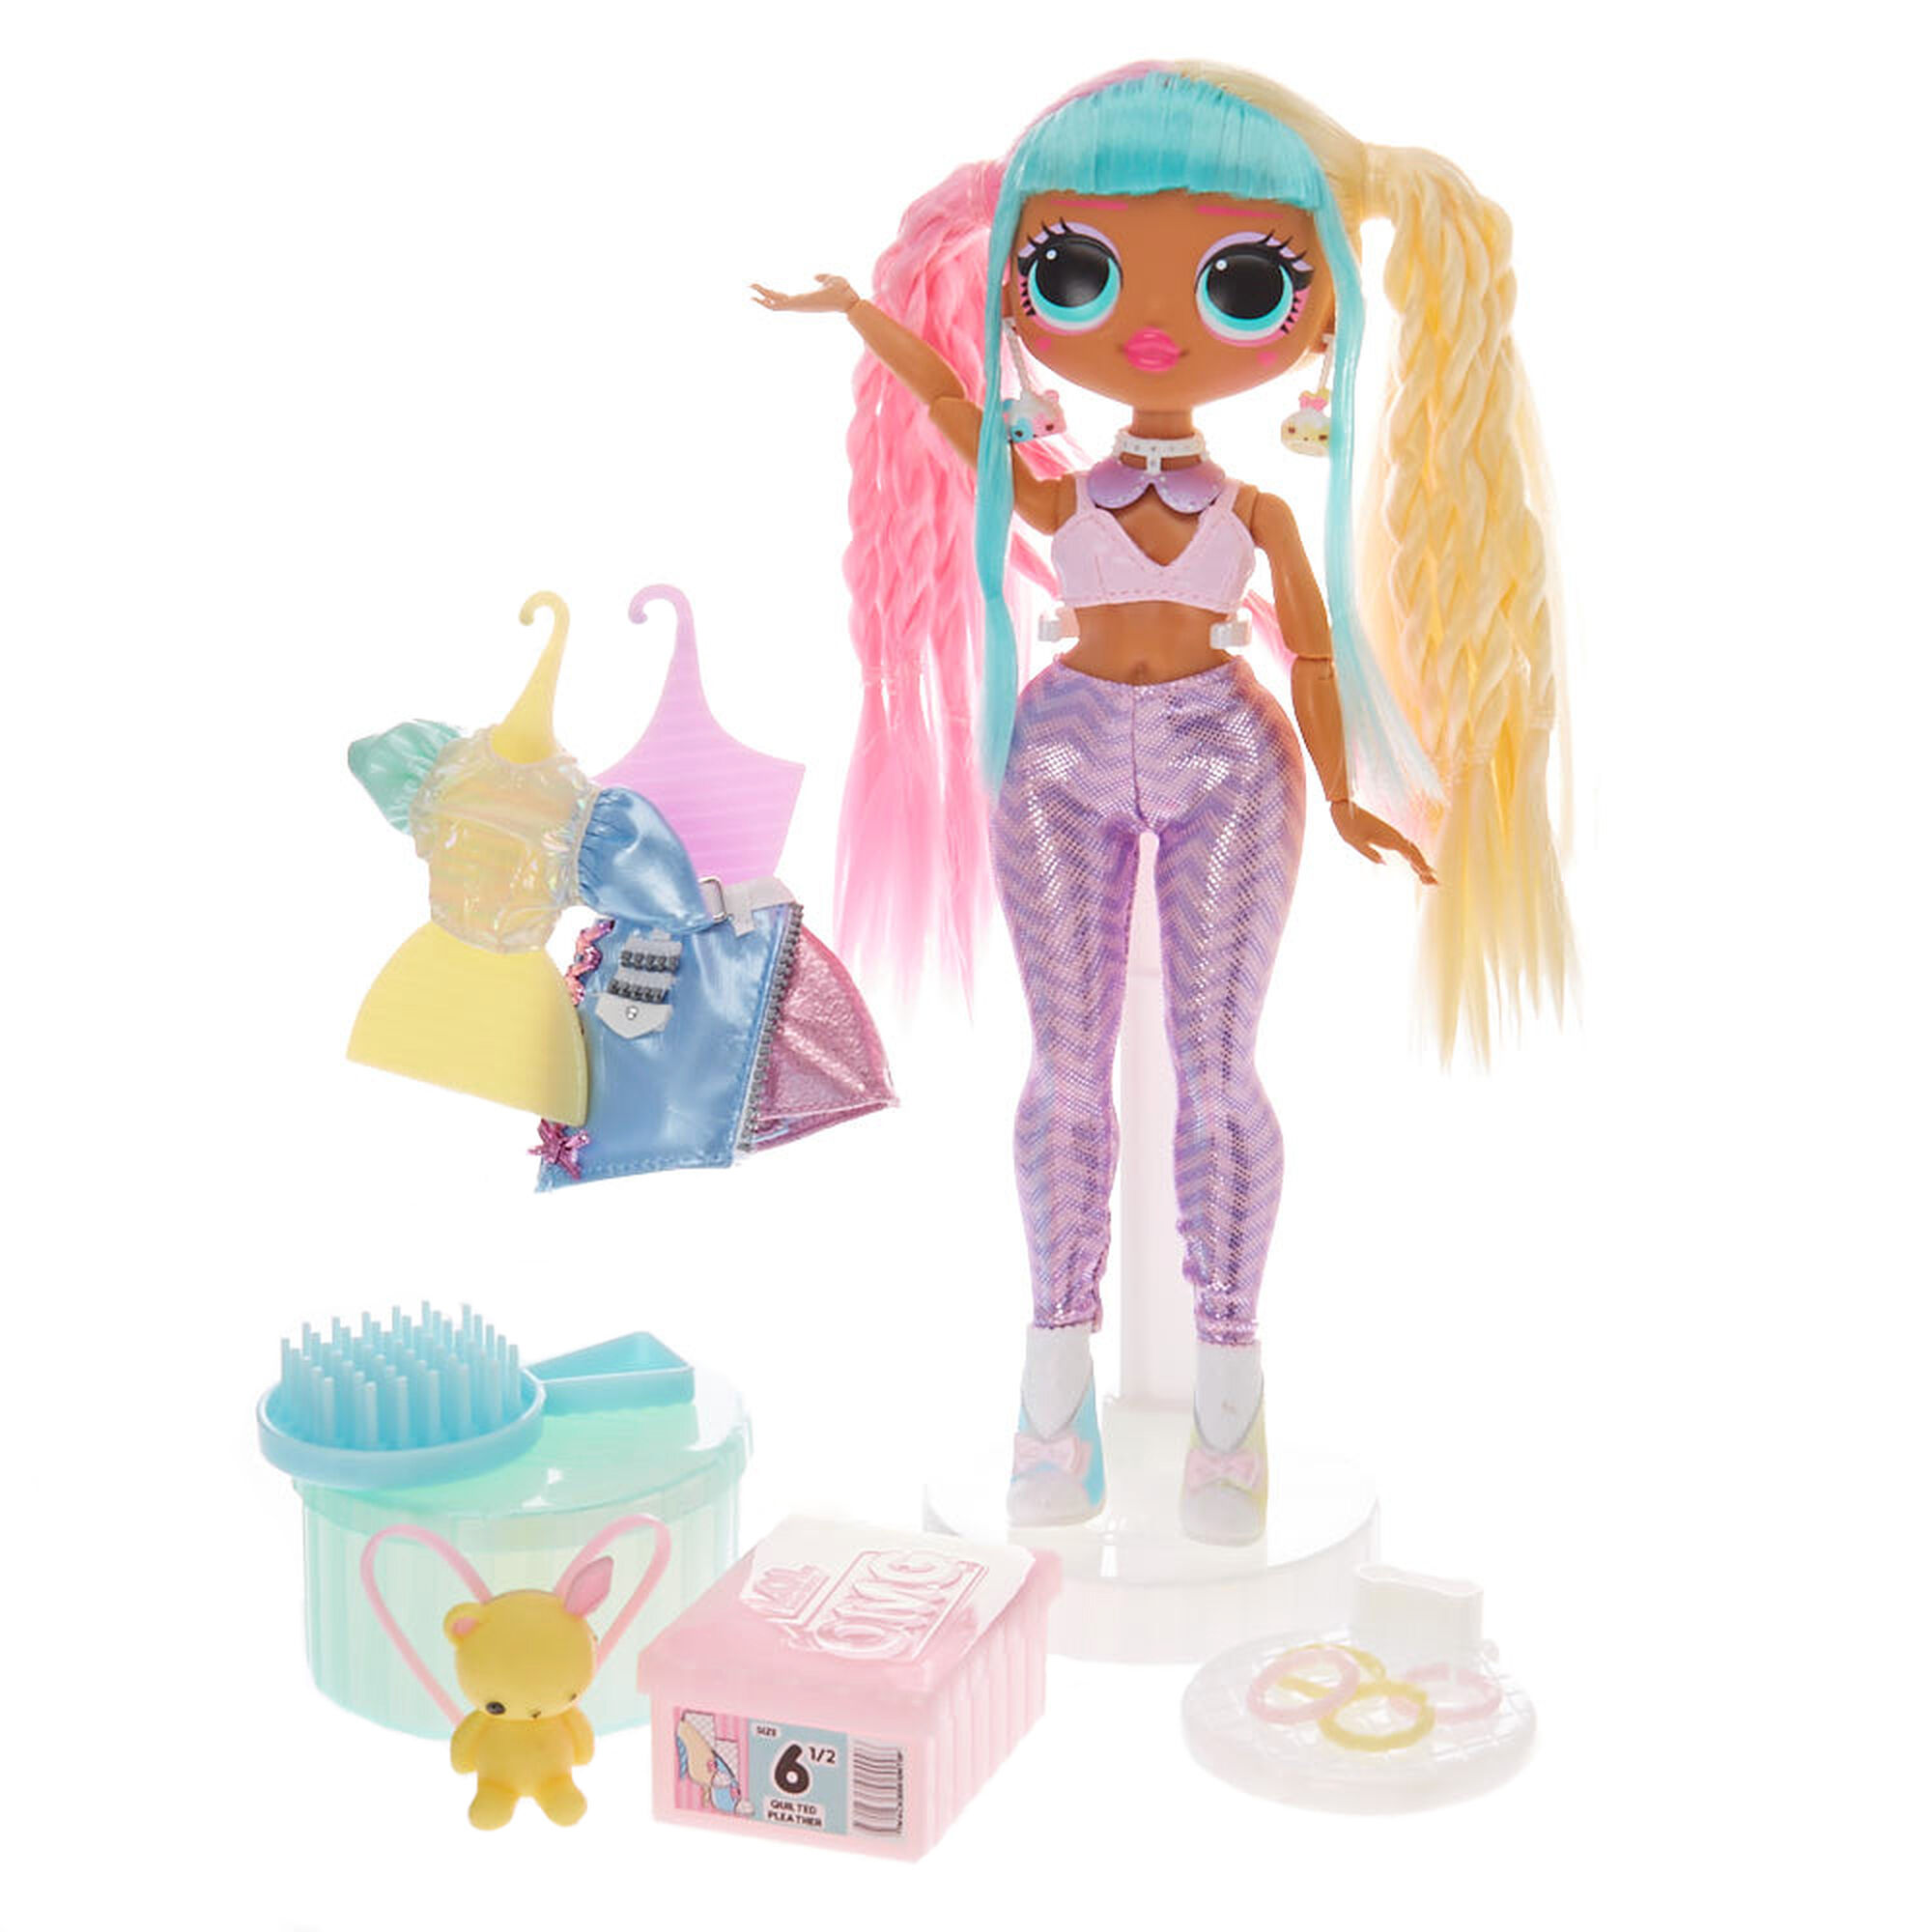 L.O.L. Surprise!™ O.M.G. Doll Series 2 - Styles May Vary ...